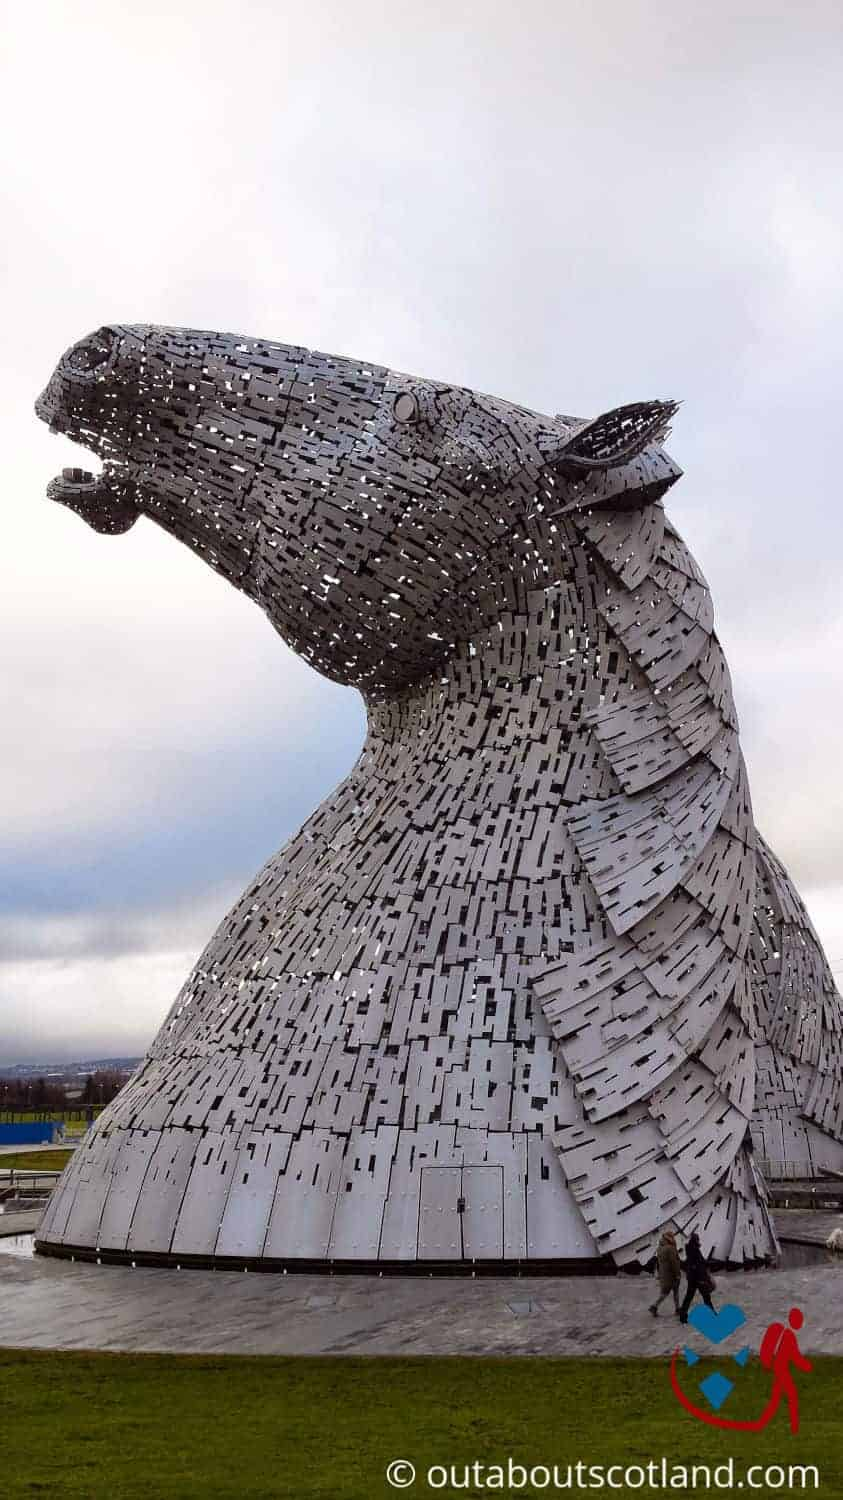 The Kelpies (6 of 6)